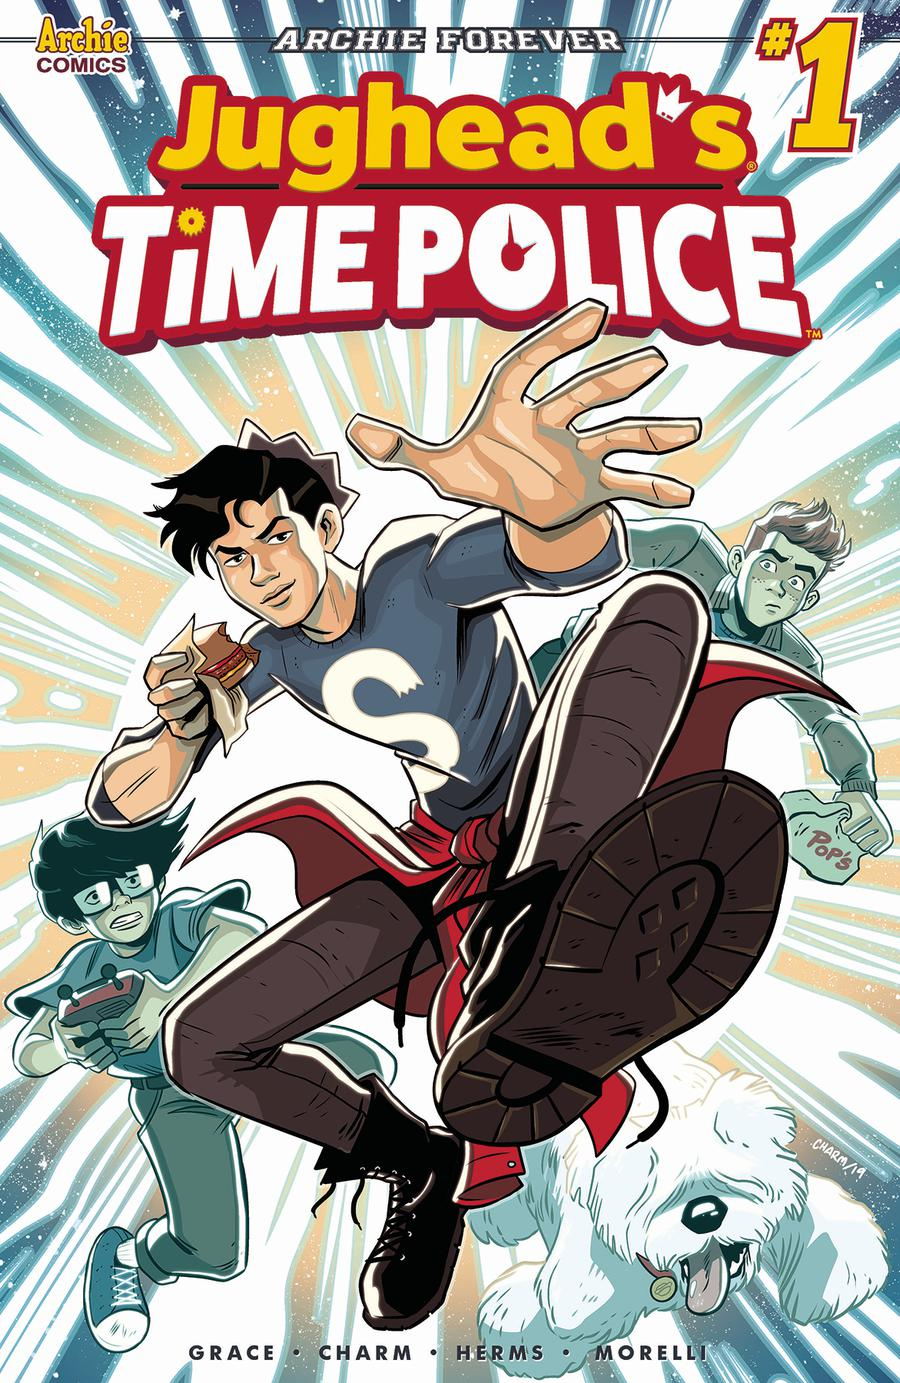 Jugheads Time Police Vol 2 #1 Cover A Regular Derek Charm Cover